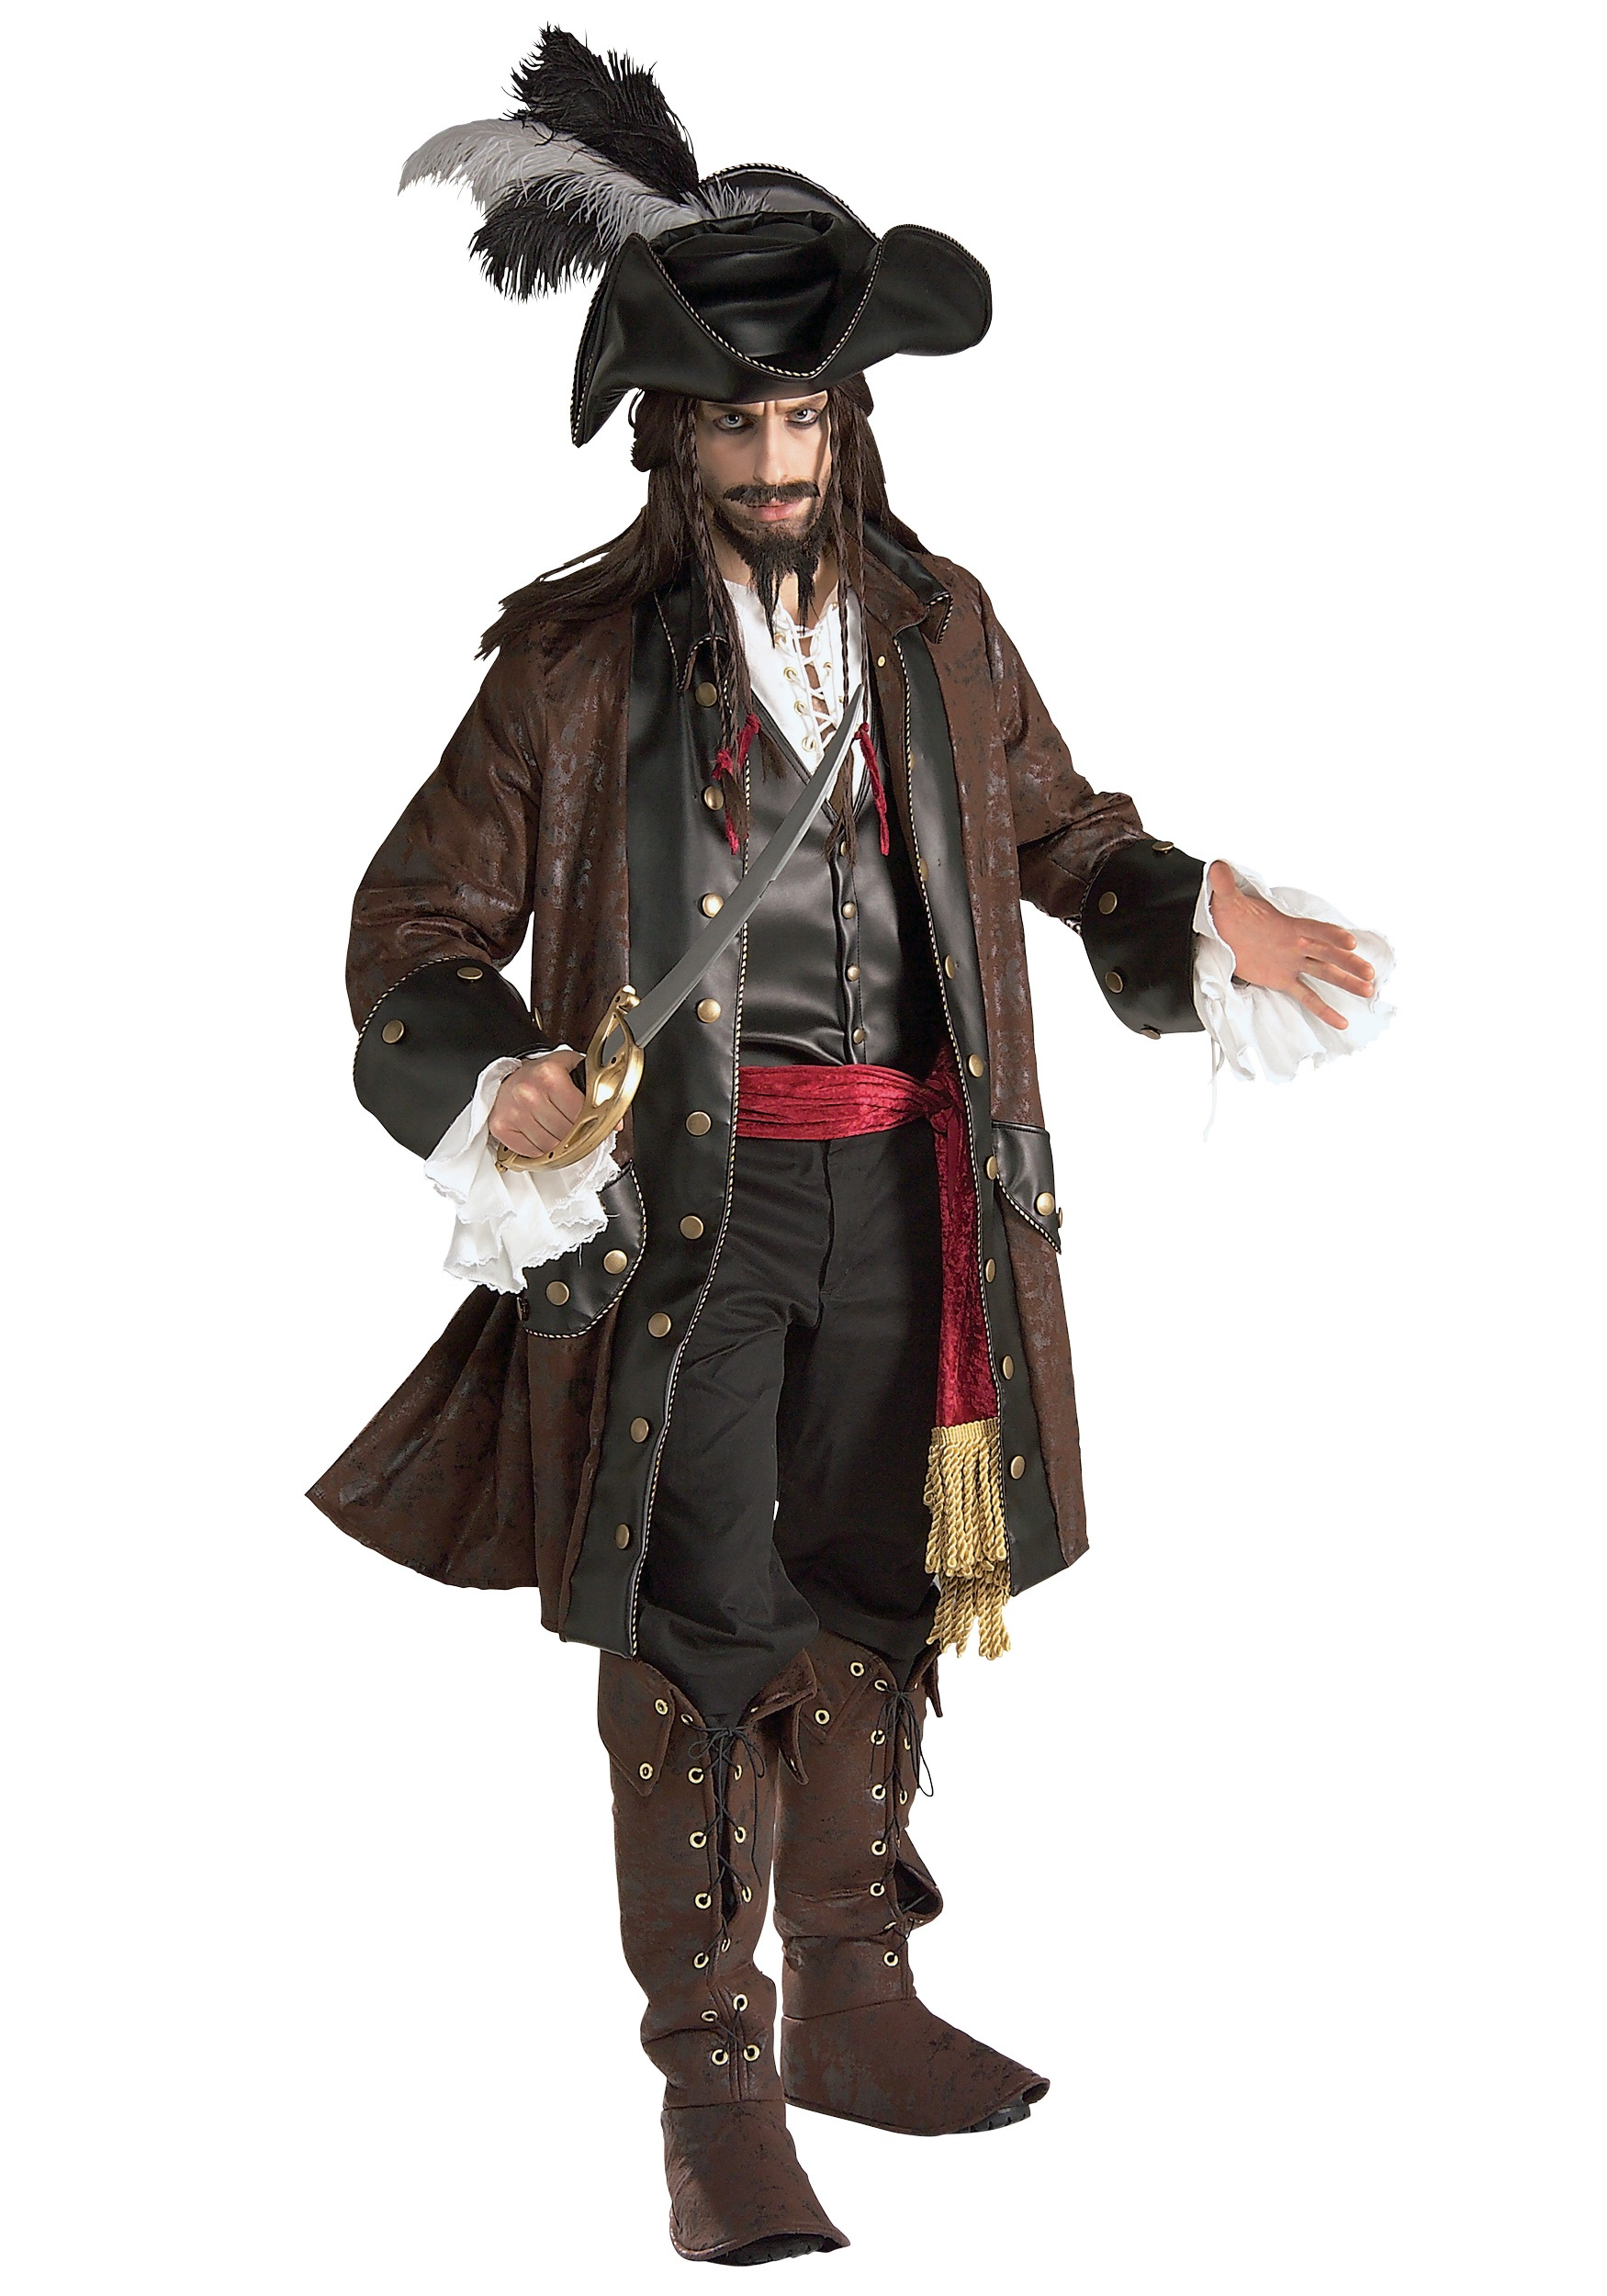 Authentic Pirate Costume  sc 1 st  Halloween Costume & Authentic Pirate Costume - Deluxe Mens Adult Caribbean Pirate Costumes